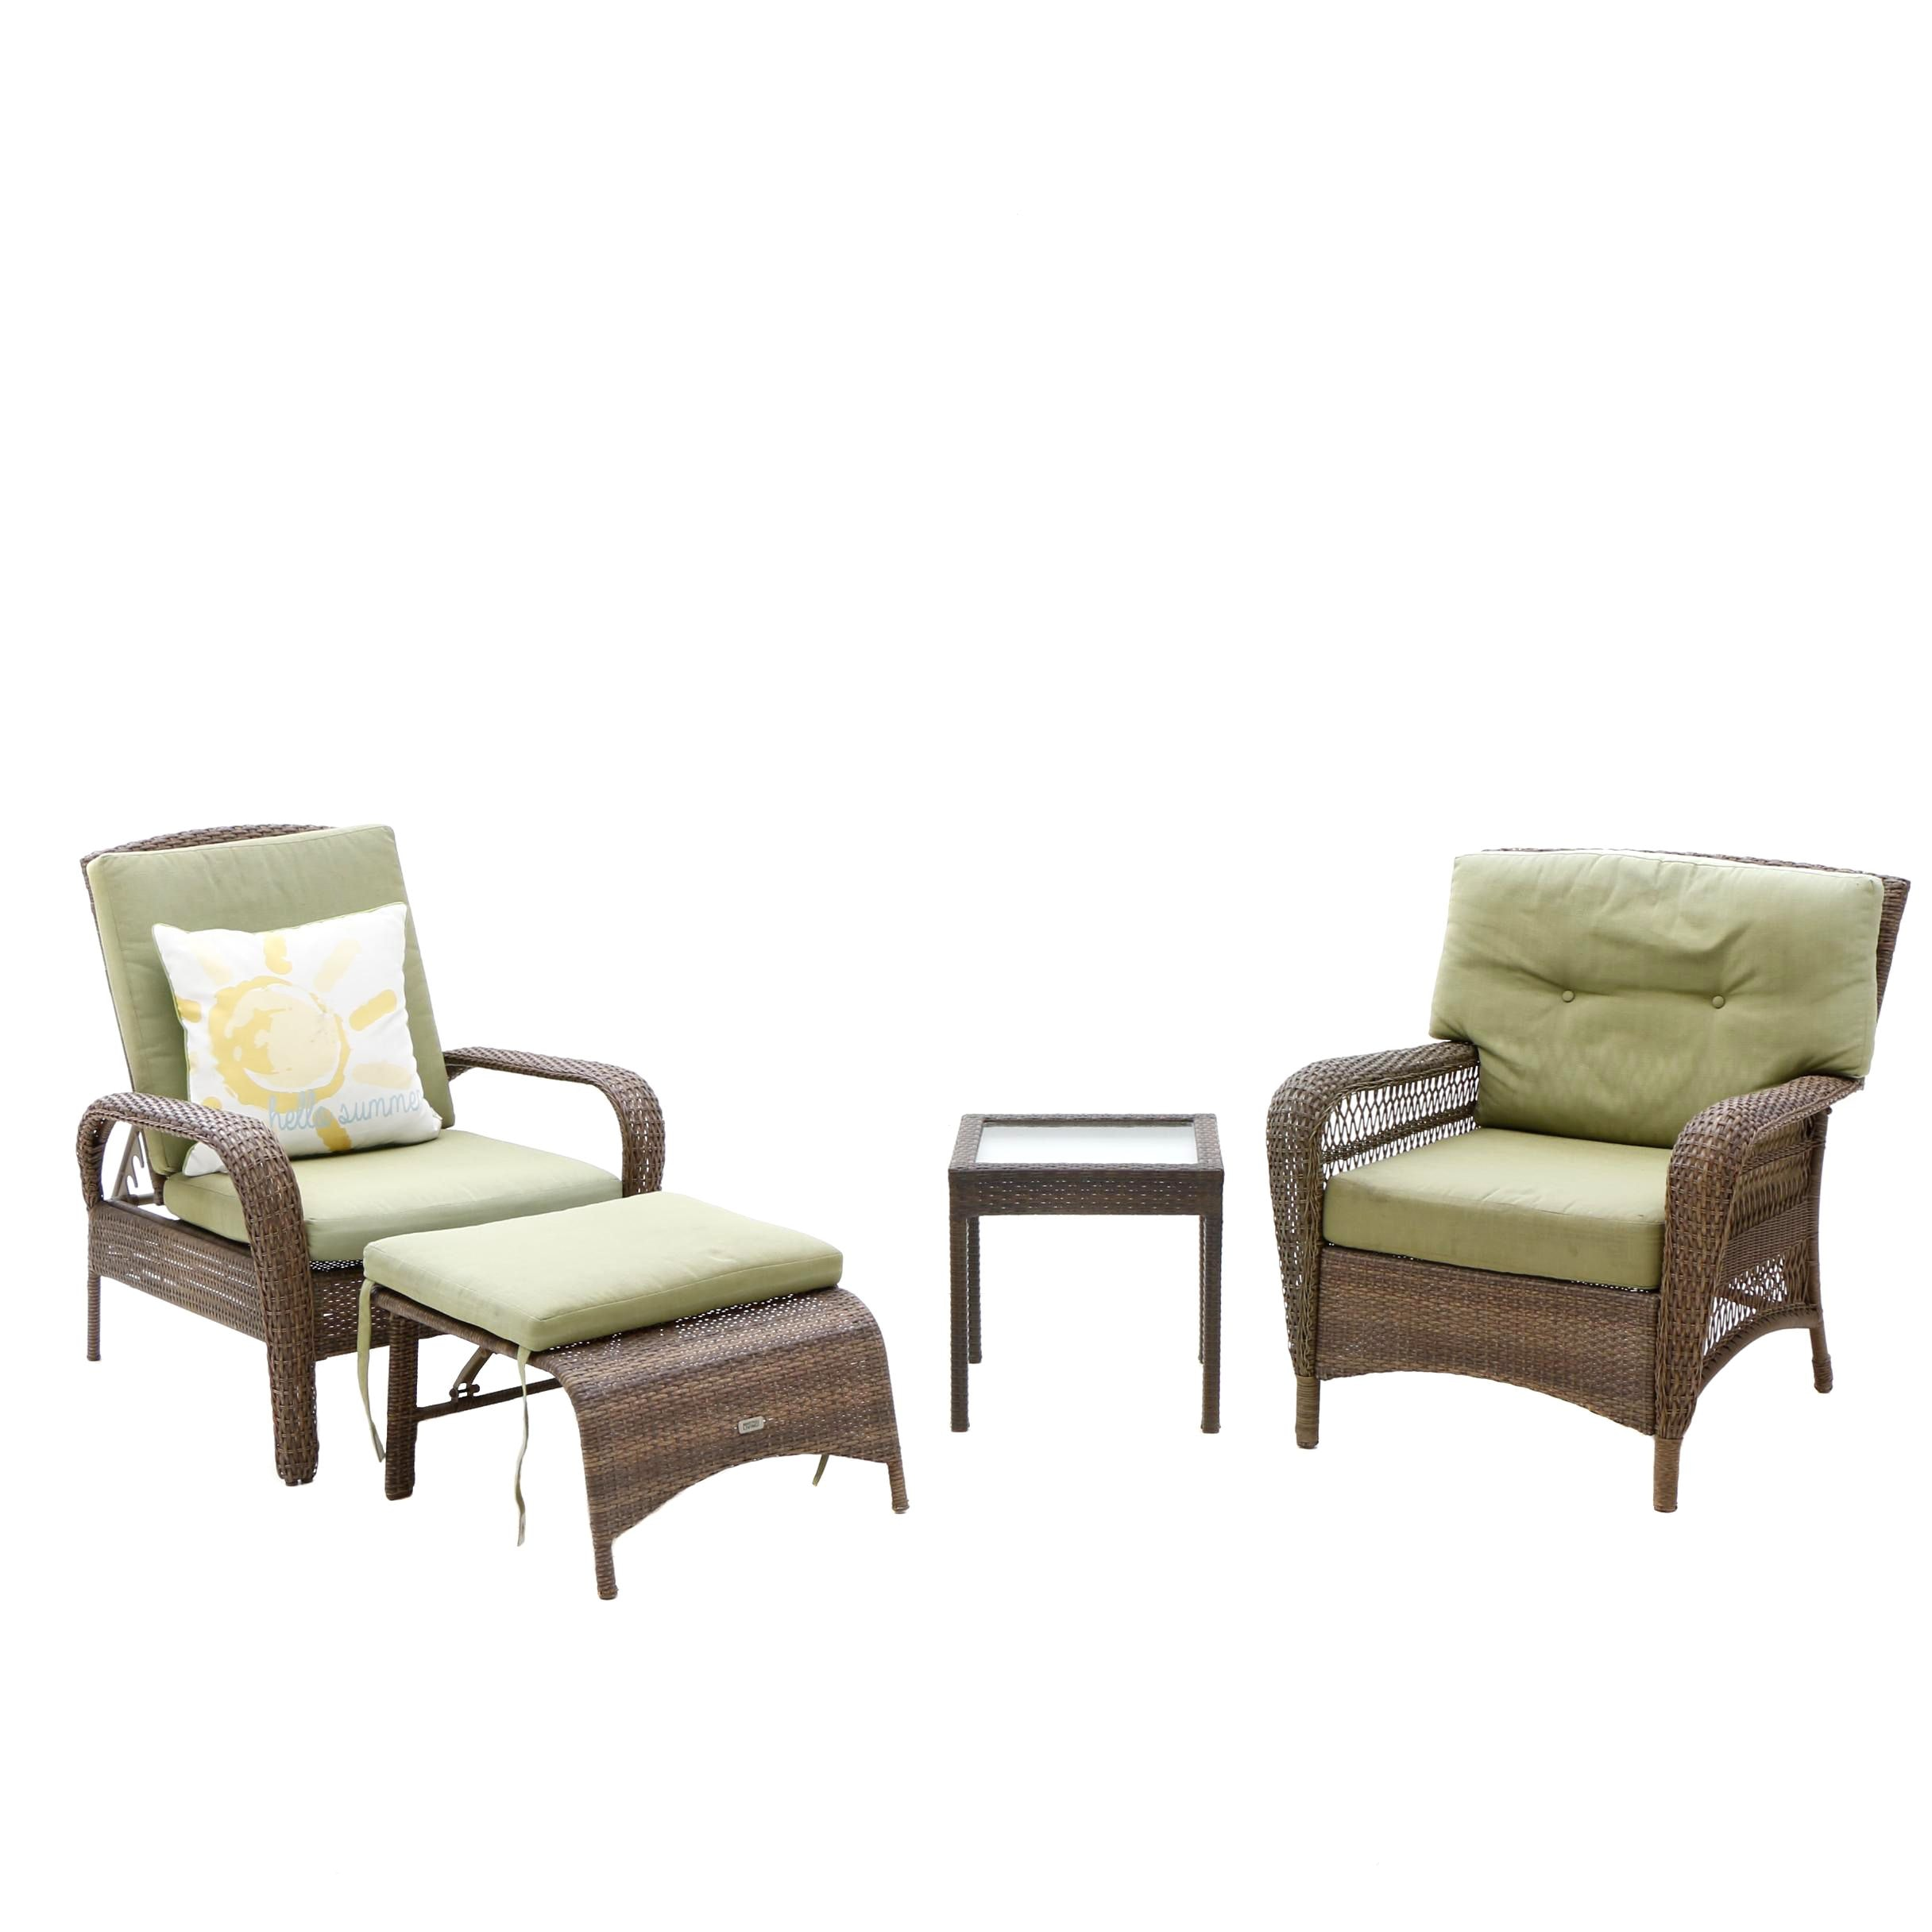 Martha Stewart Living Patio Chair, Chaise and Side  Table